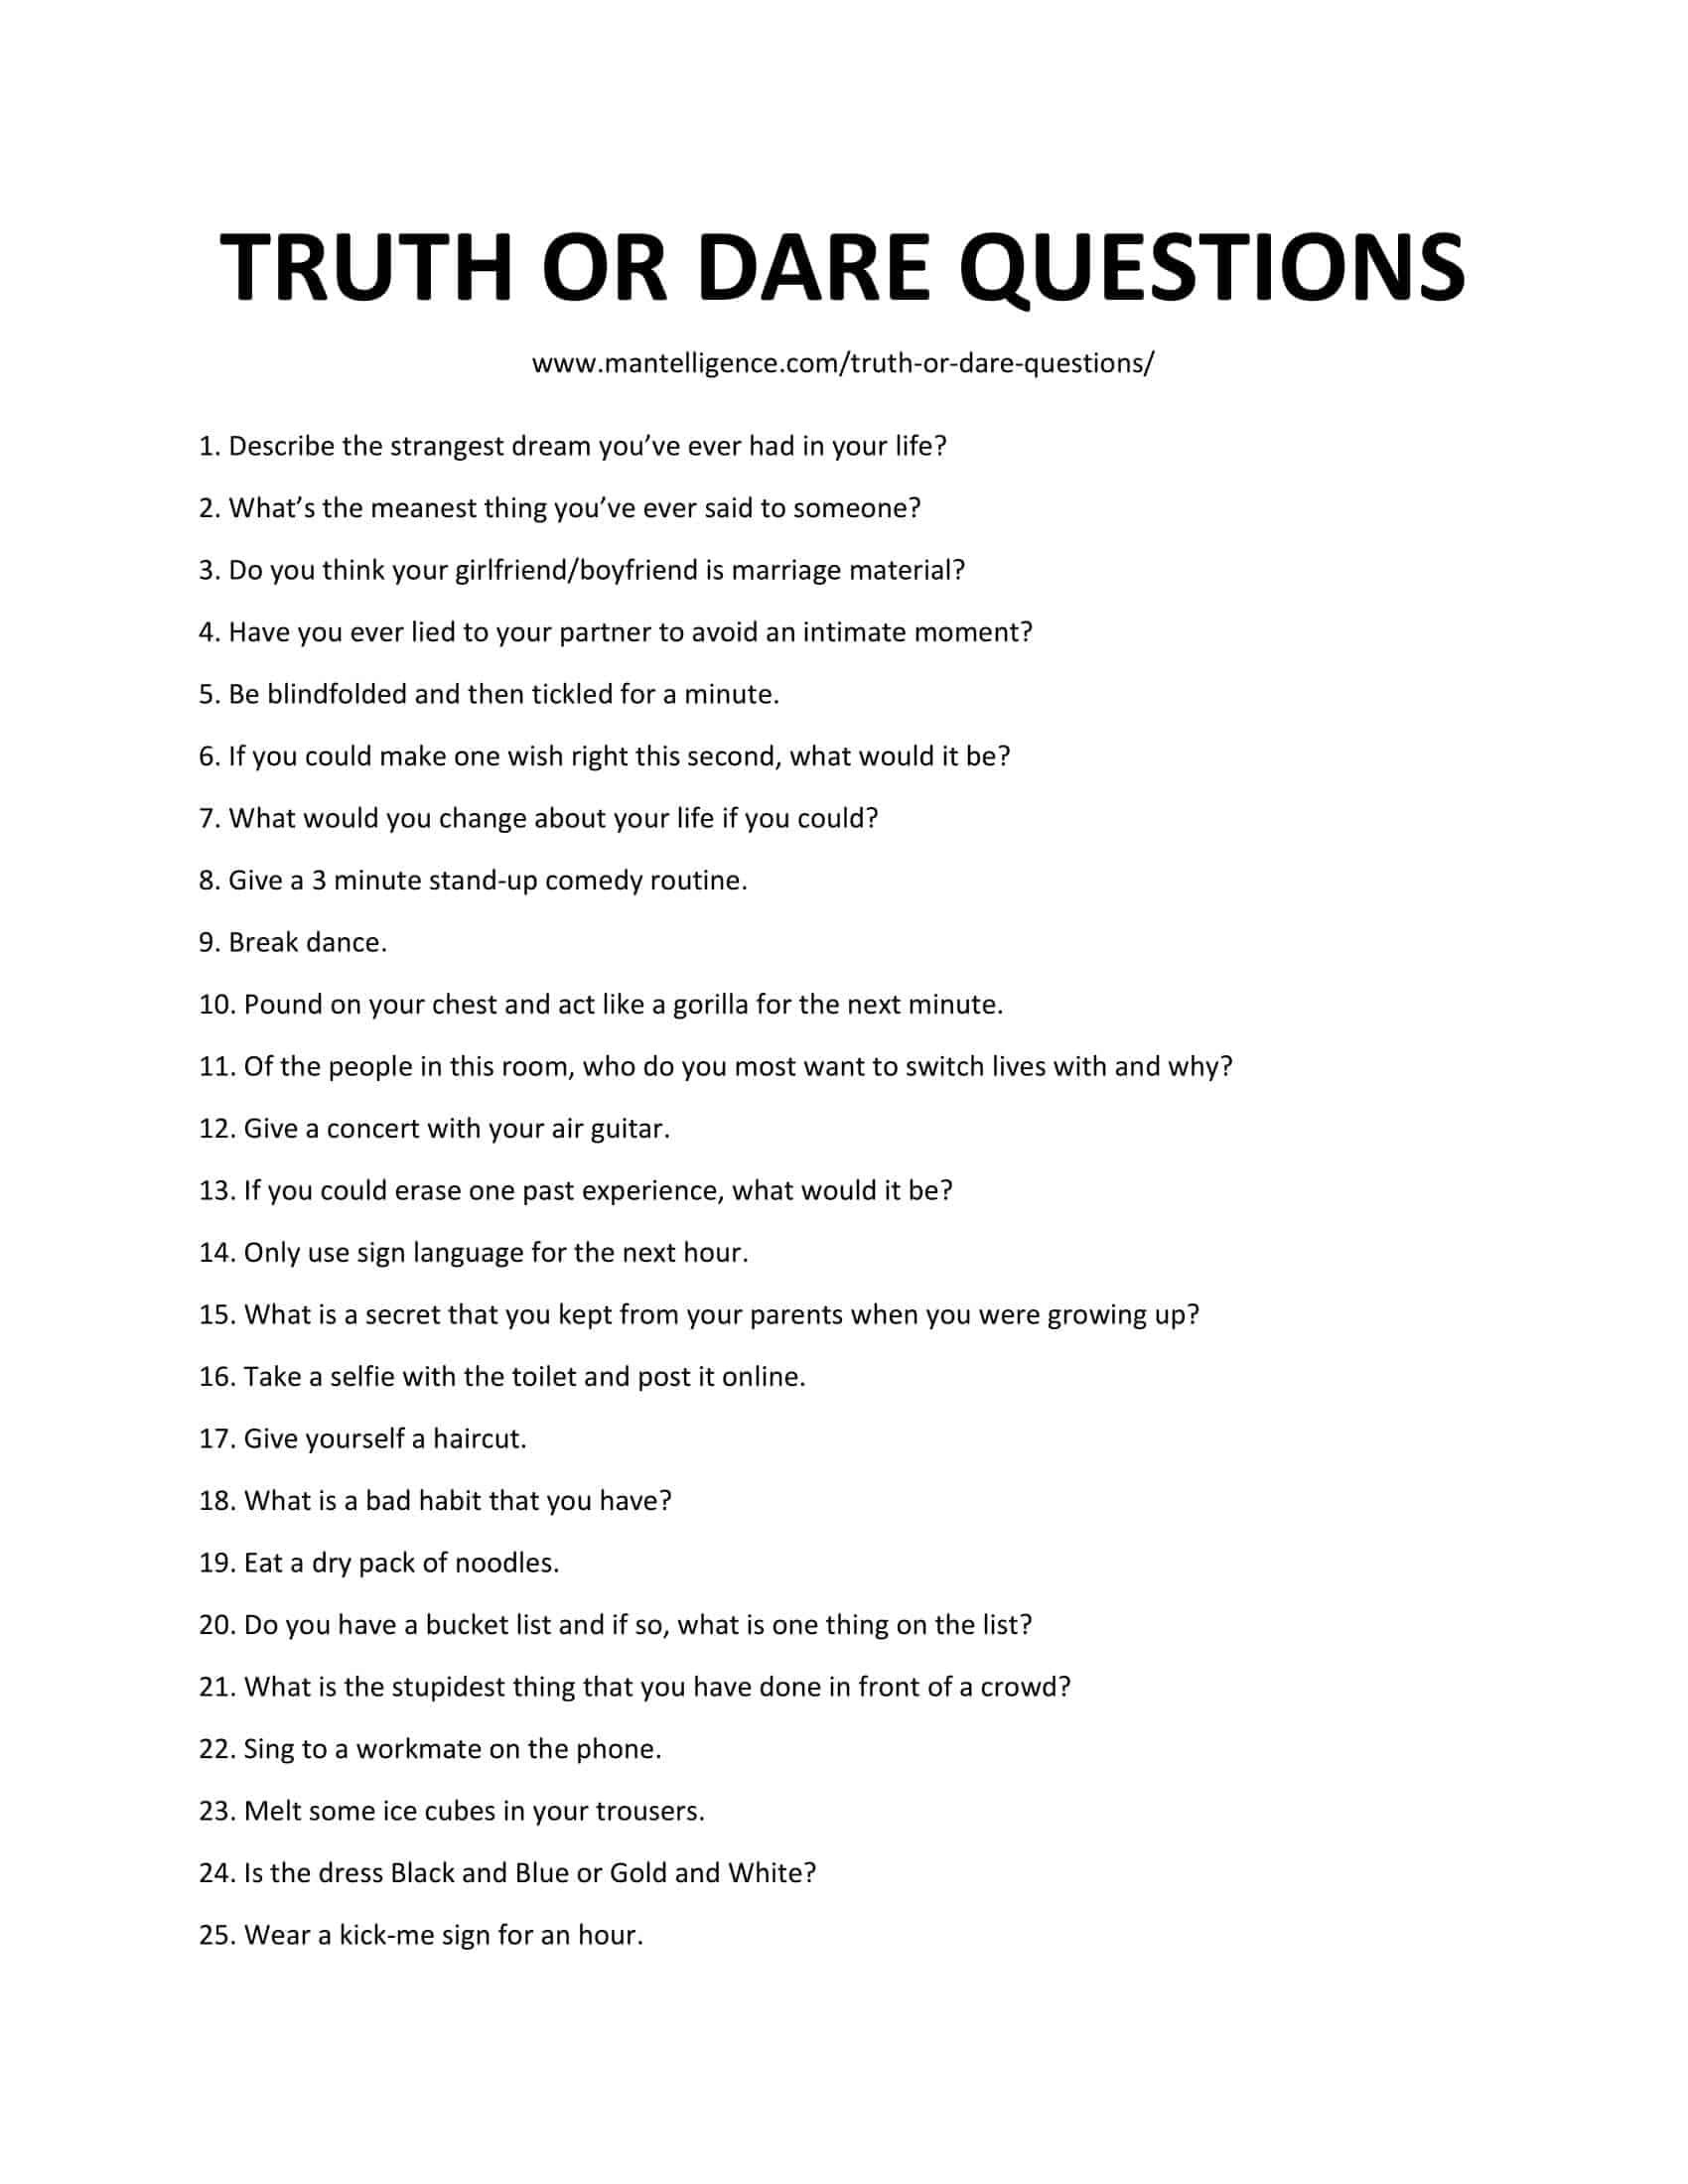 10 Fashionable Extreme Truth Or Dare Ideas 124 really good truth or dare questions the only list youll need 2 2021